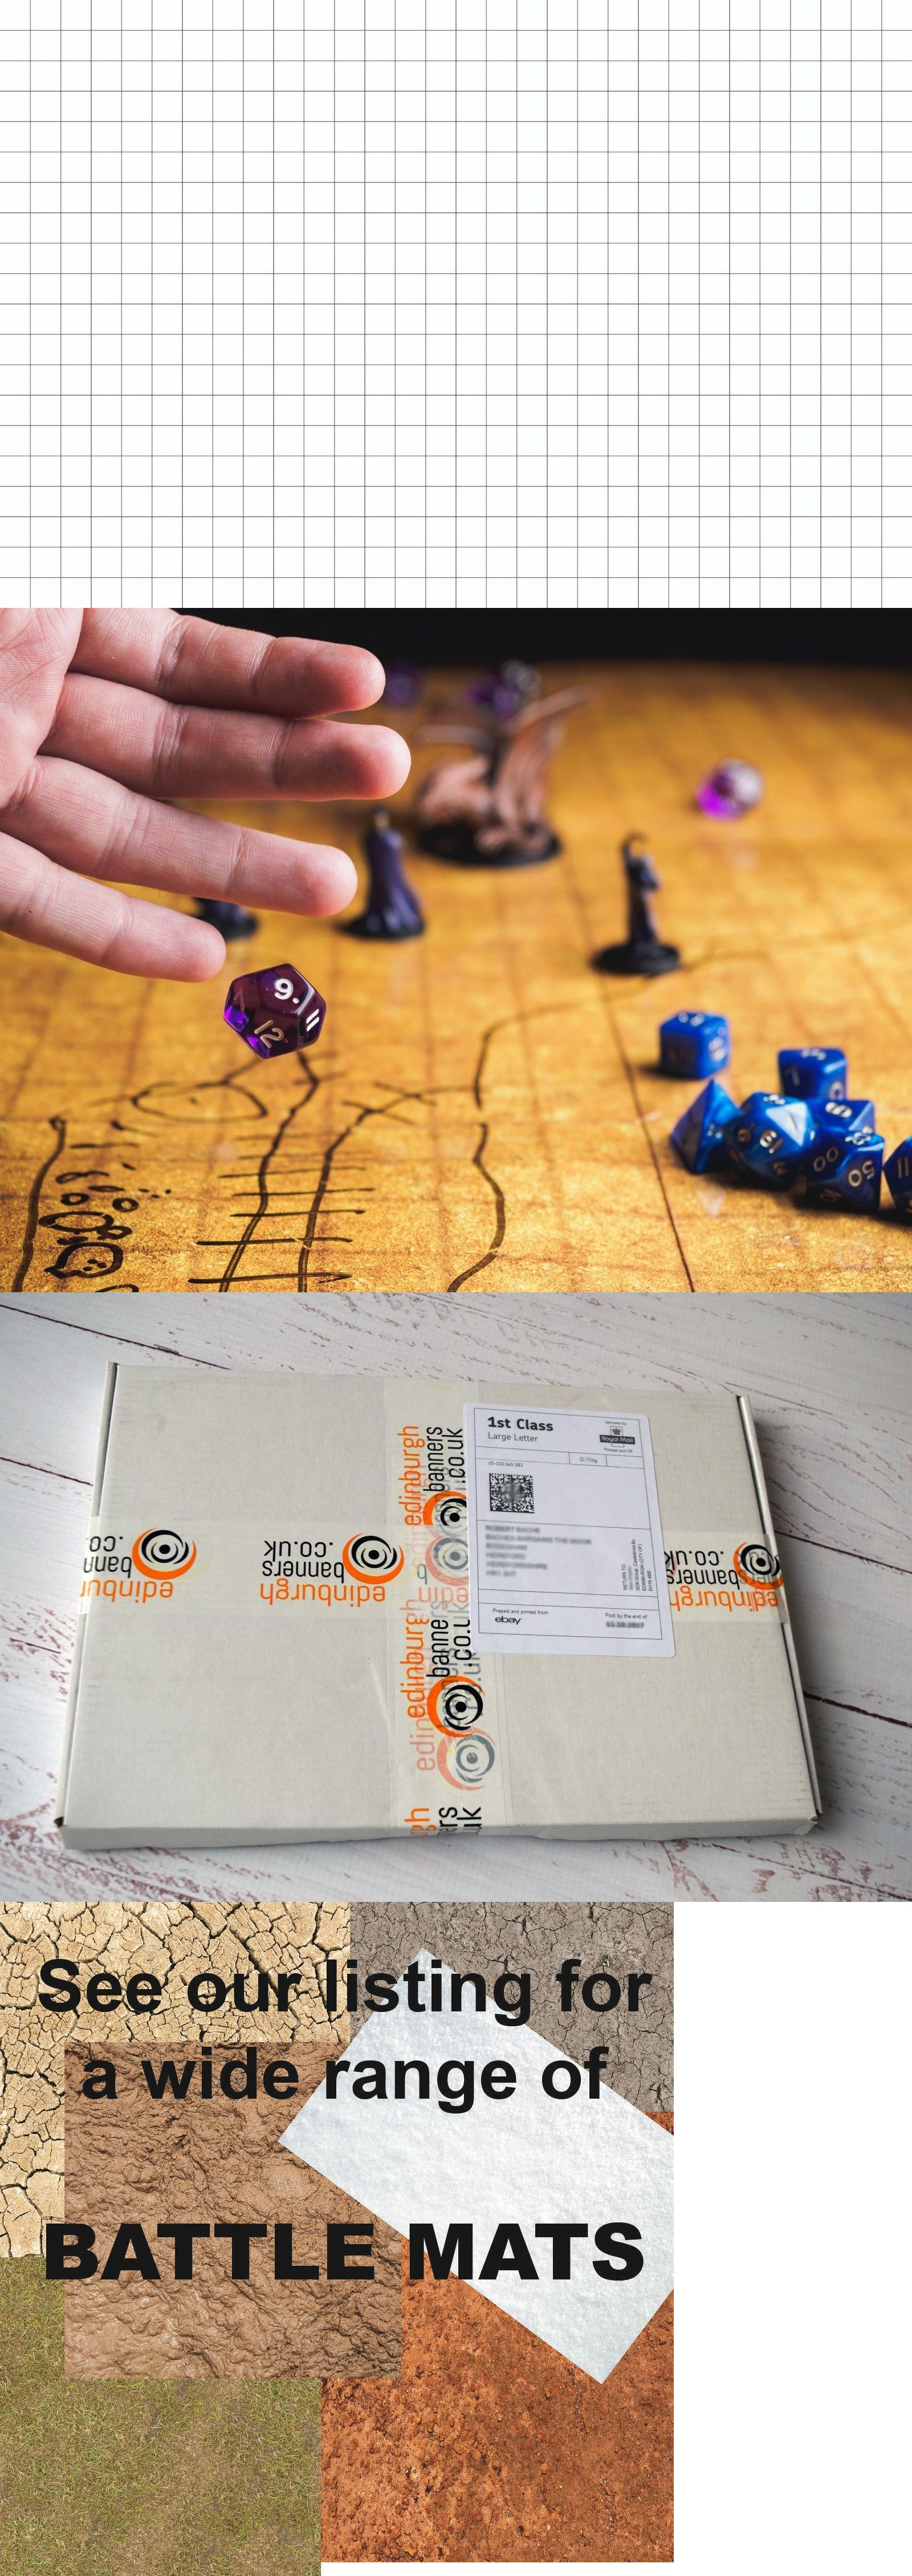 Full Sets 44114 Battle Mats Grid Game Mat 4x4 Rpg Dnd 3x3 Map 6x4 Dungeons And Dragons Blank Buy It Now Only 14 99 Grid Game Dungeons And Dragons Games